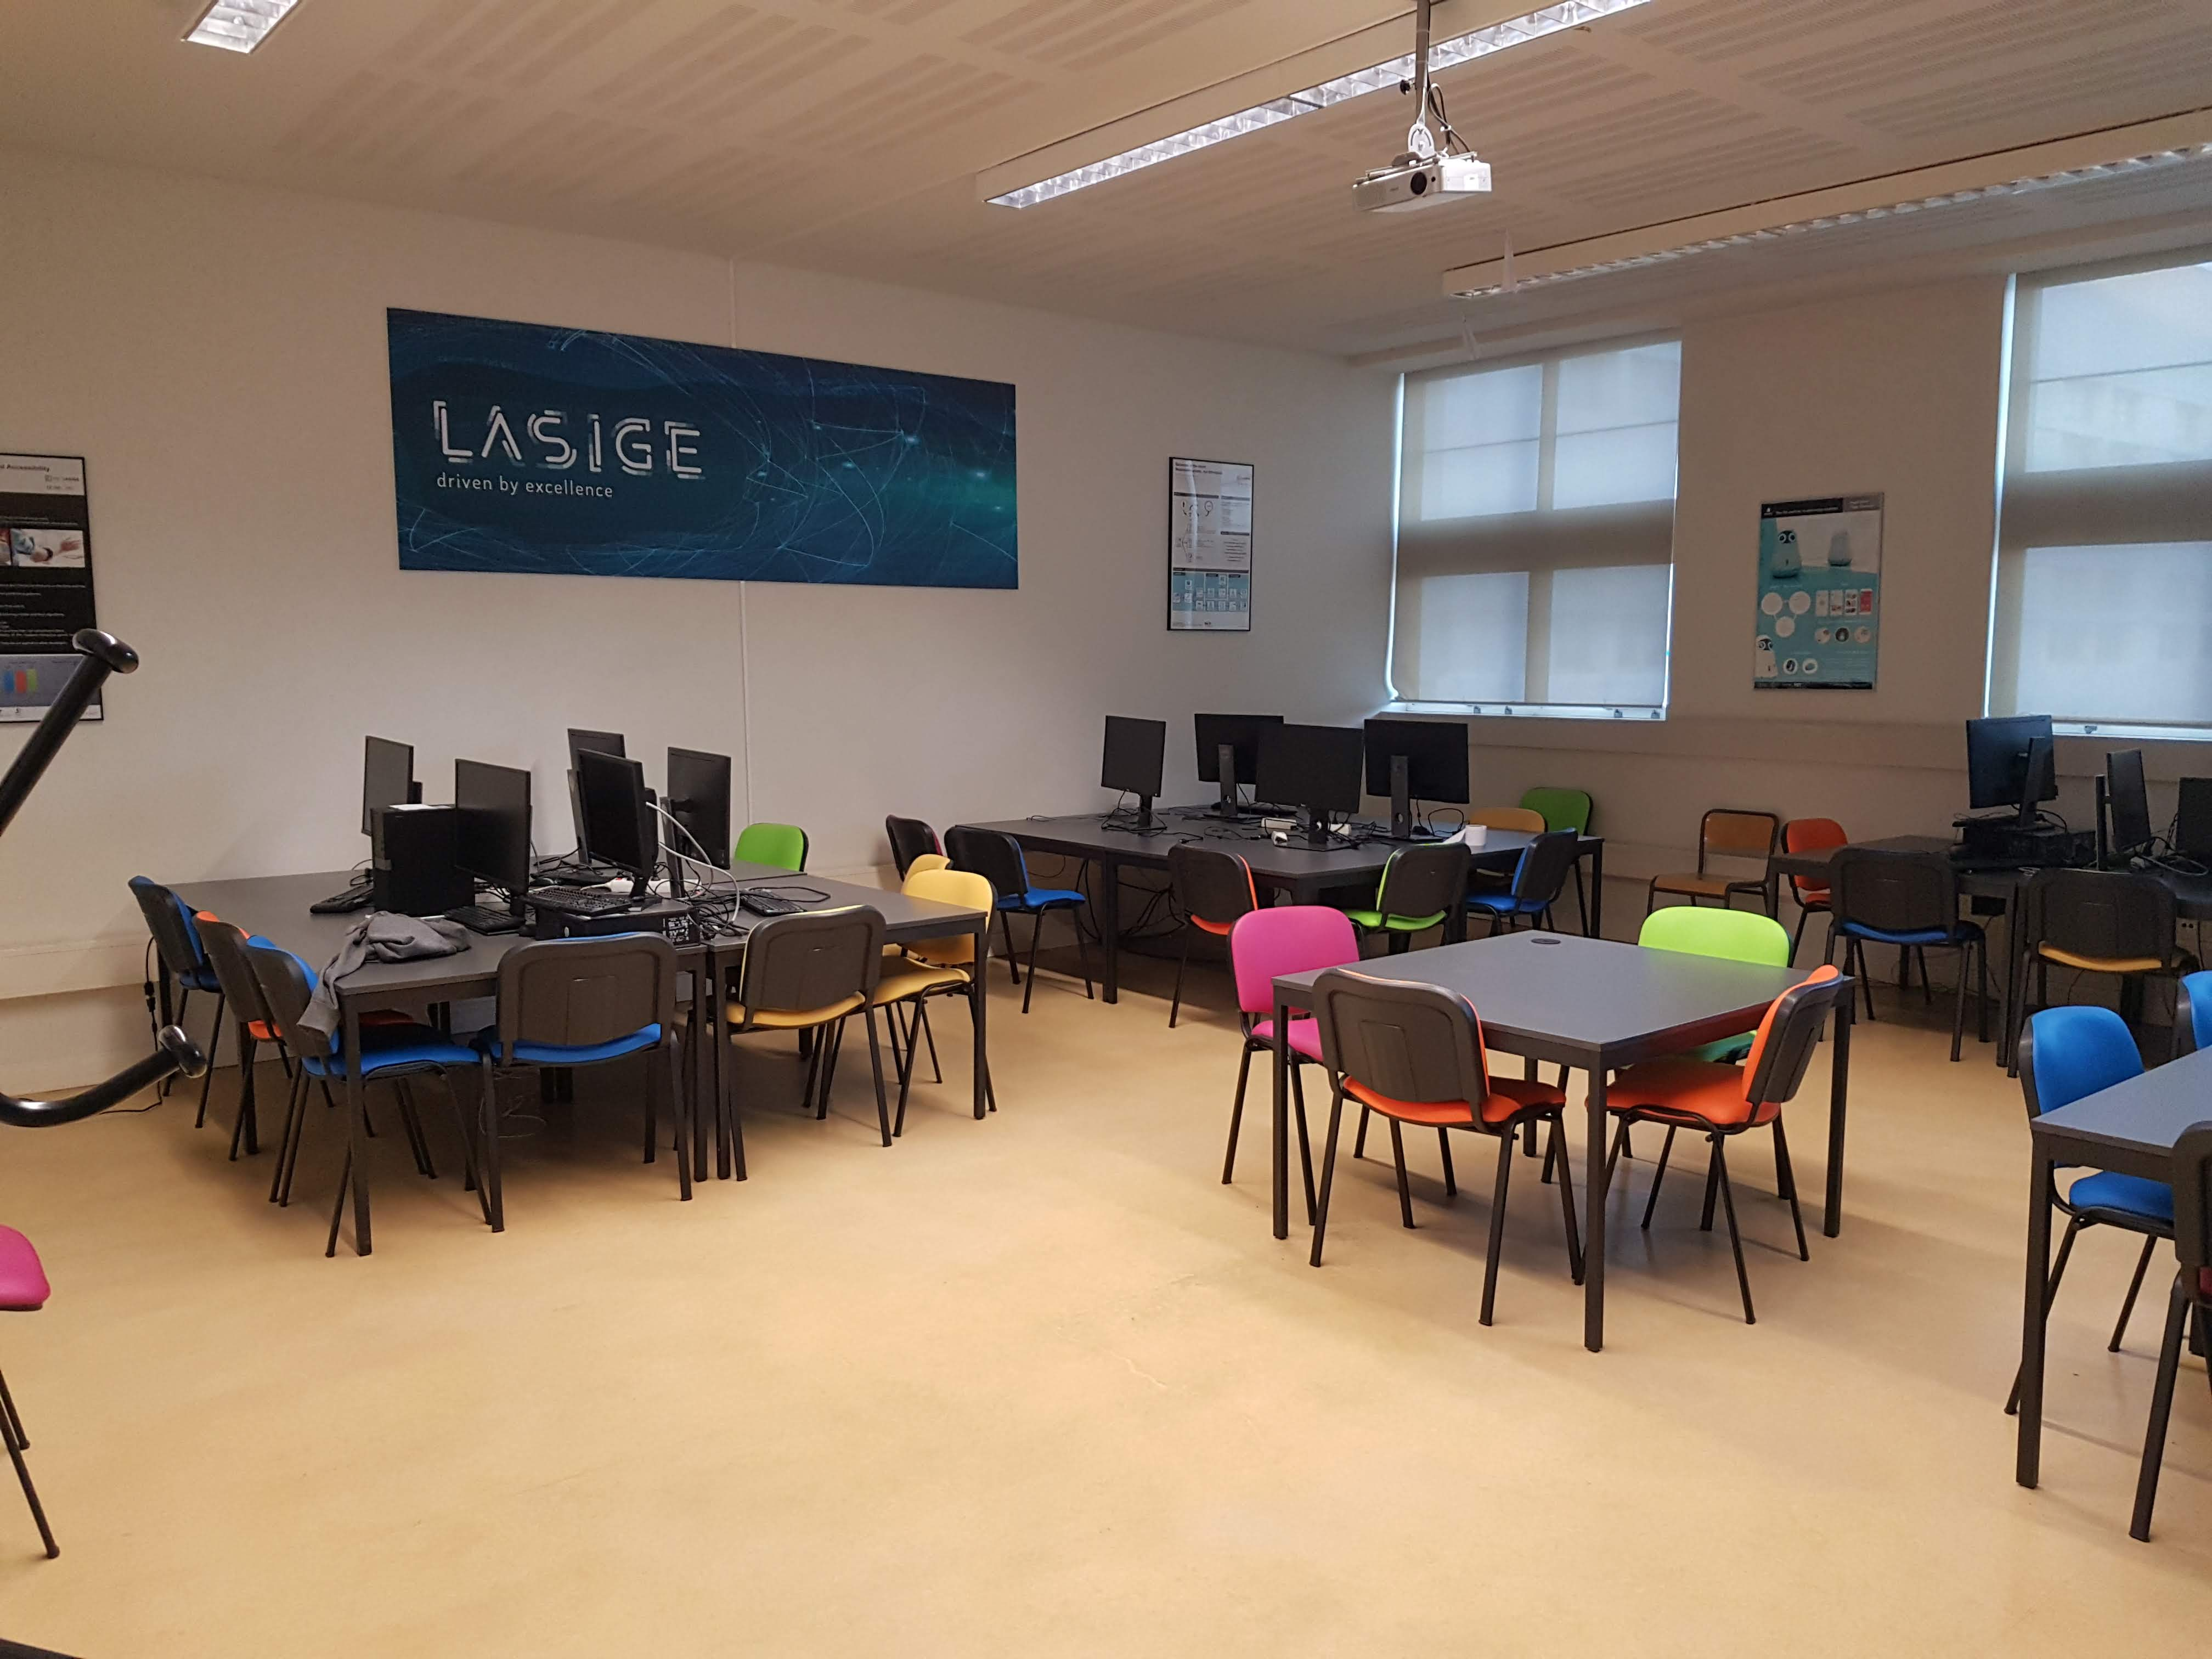 LASIGE Open Space lab